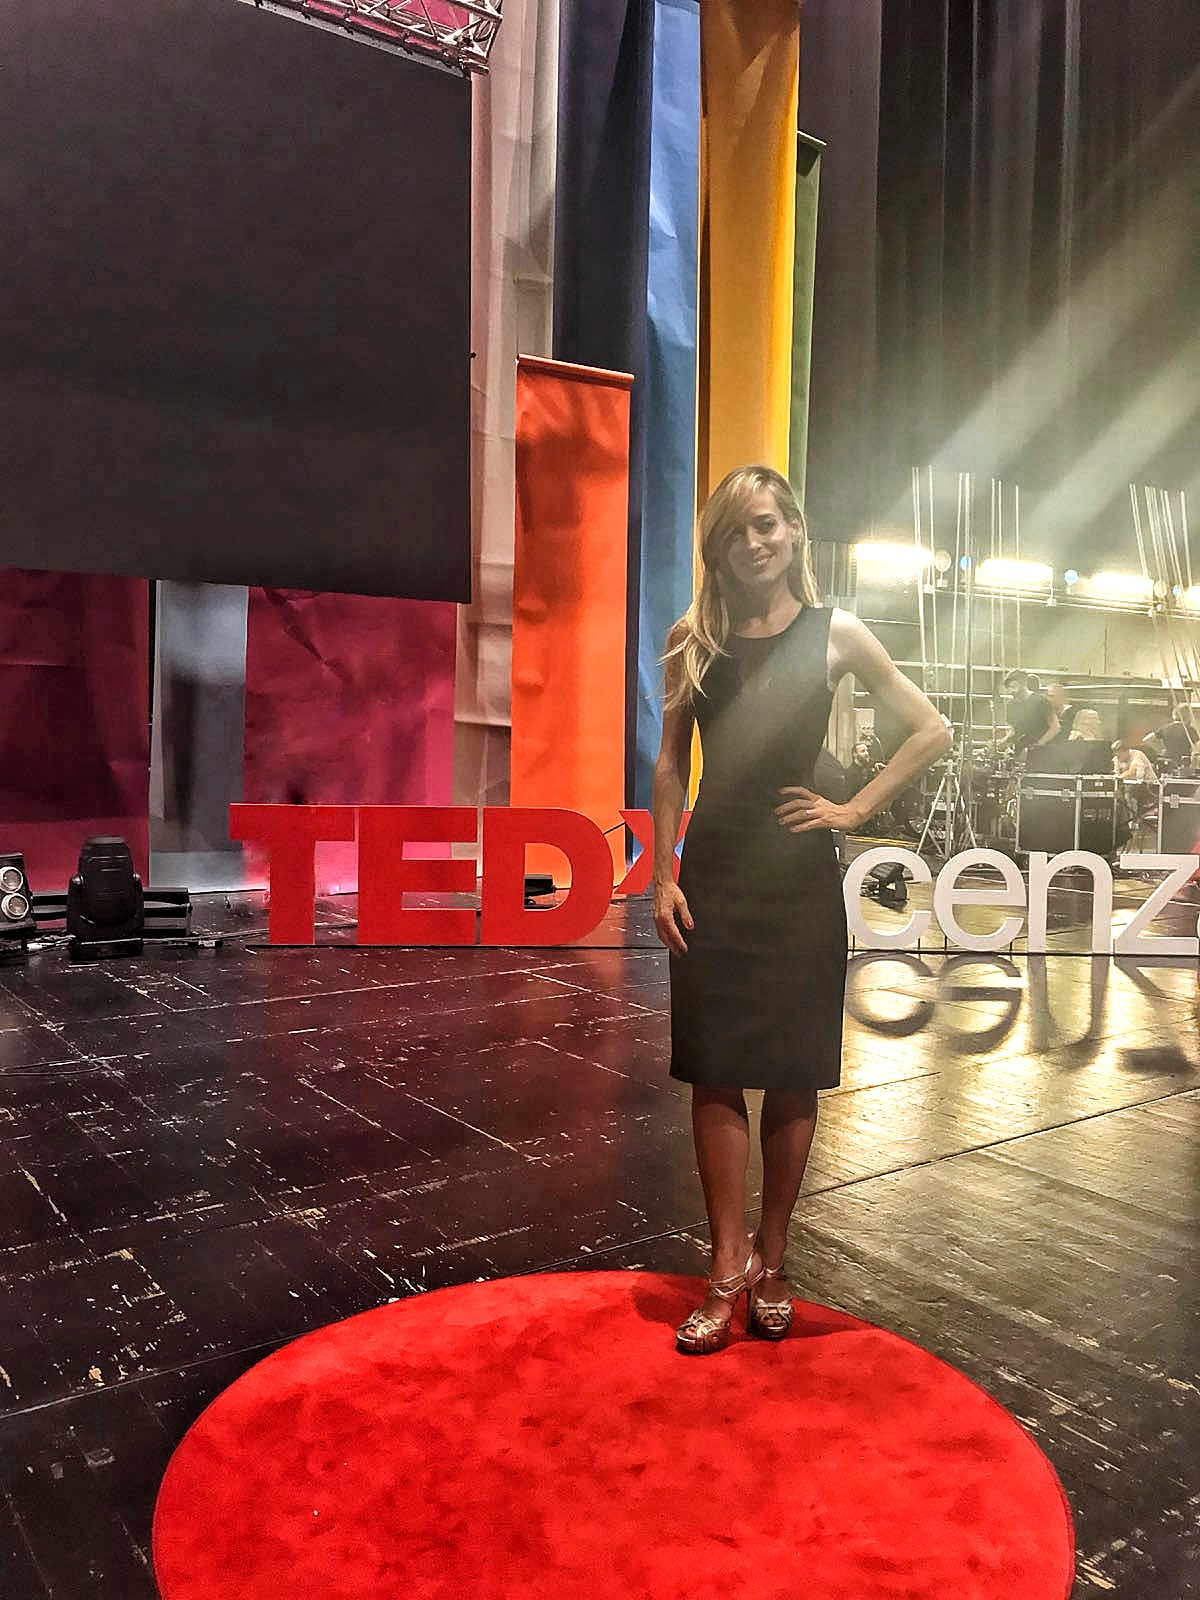 Jessica during the Italian TED Talks event which she hosted and moderated